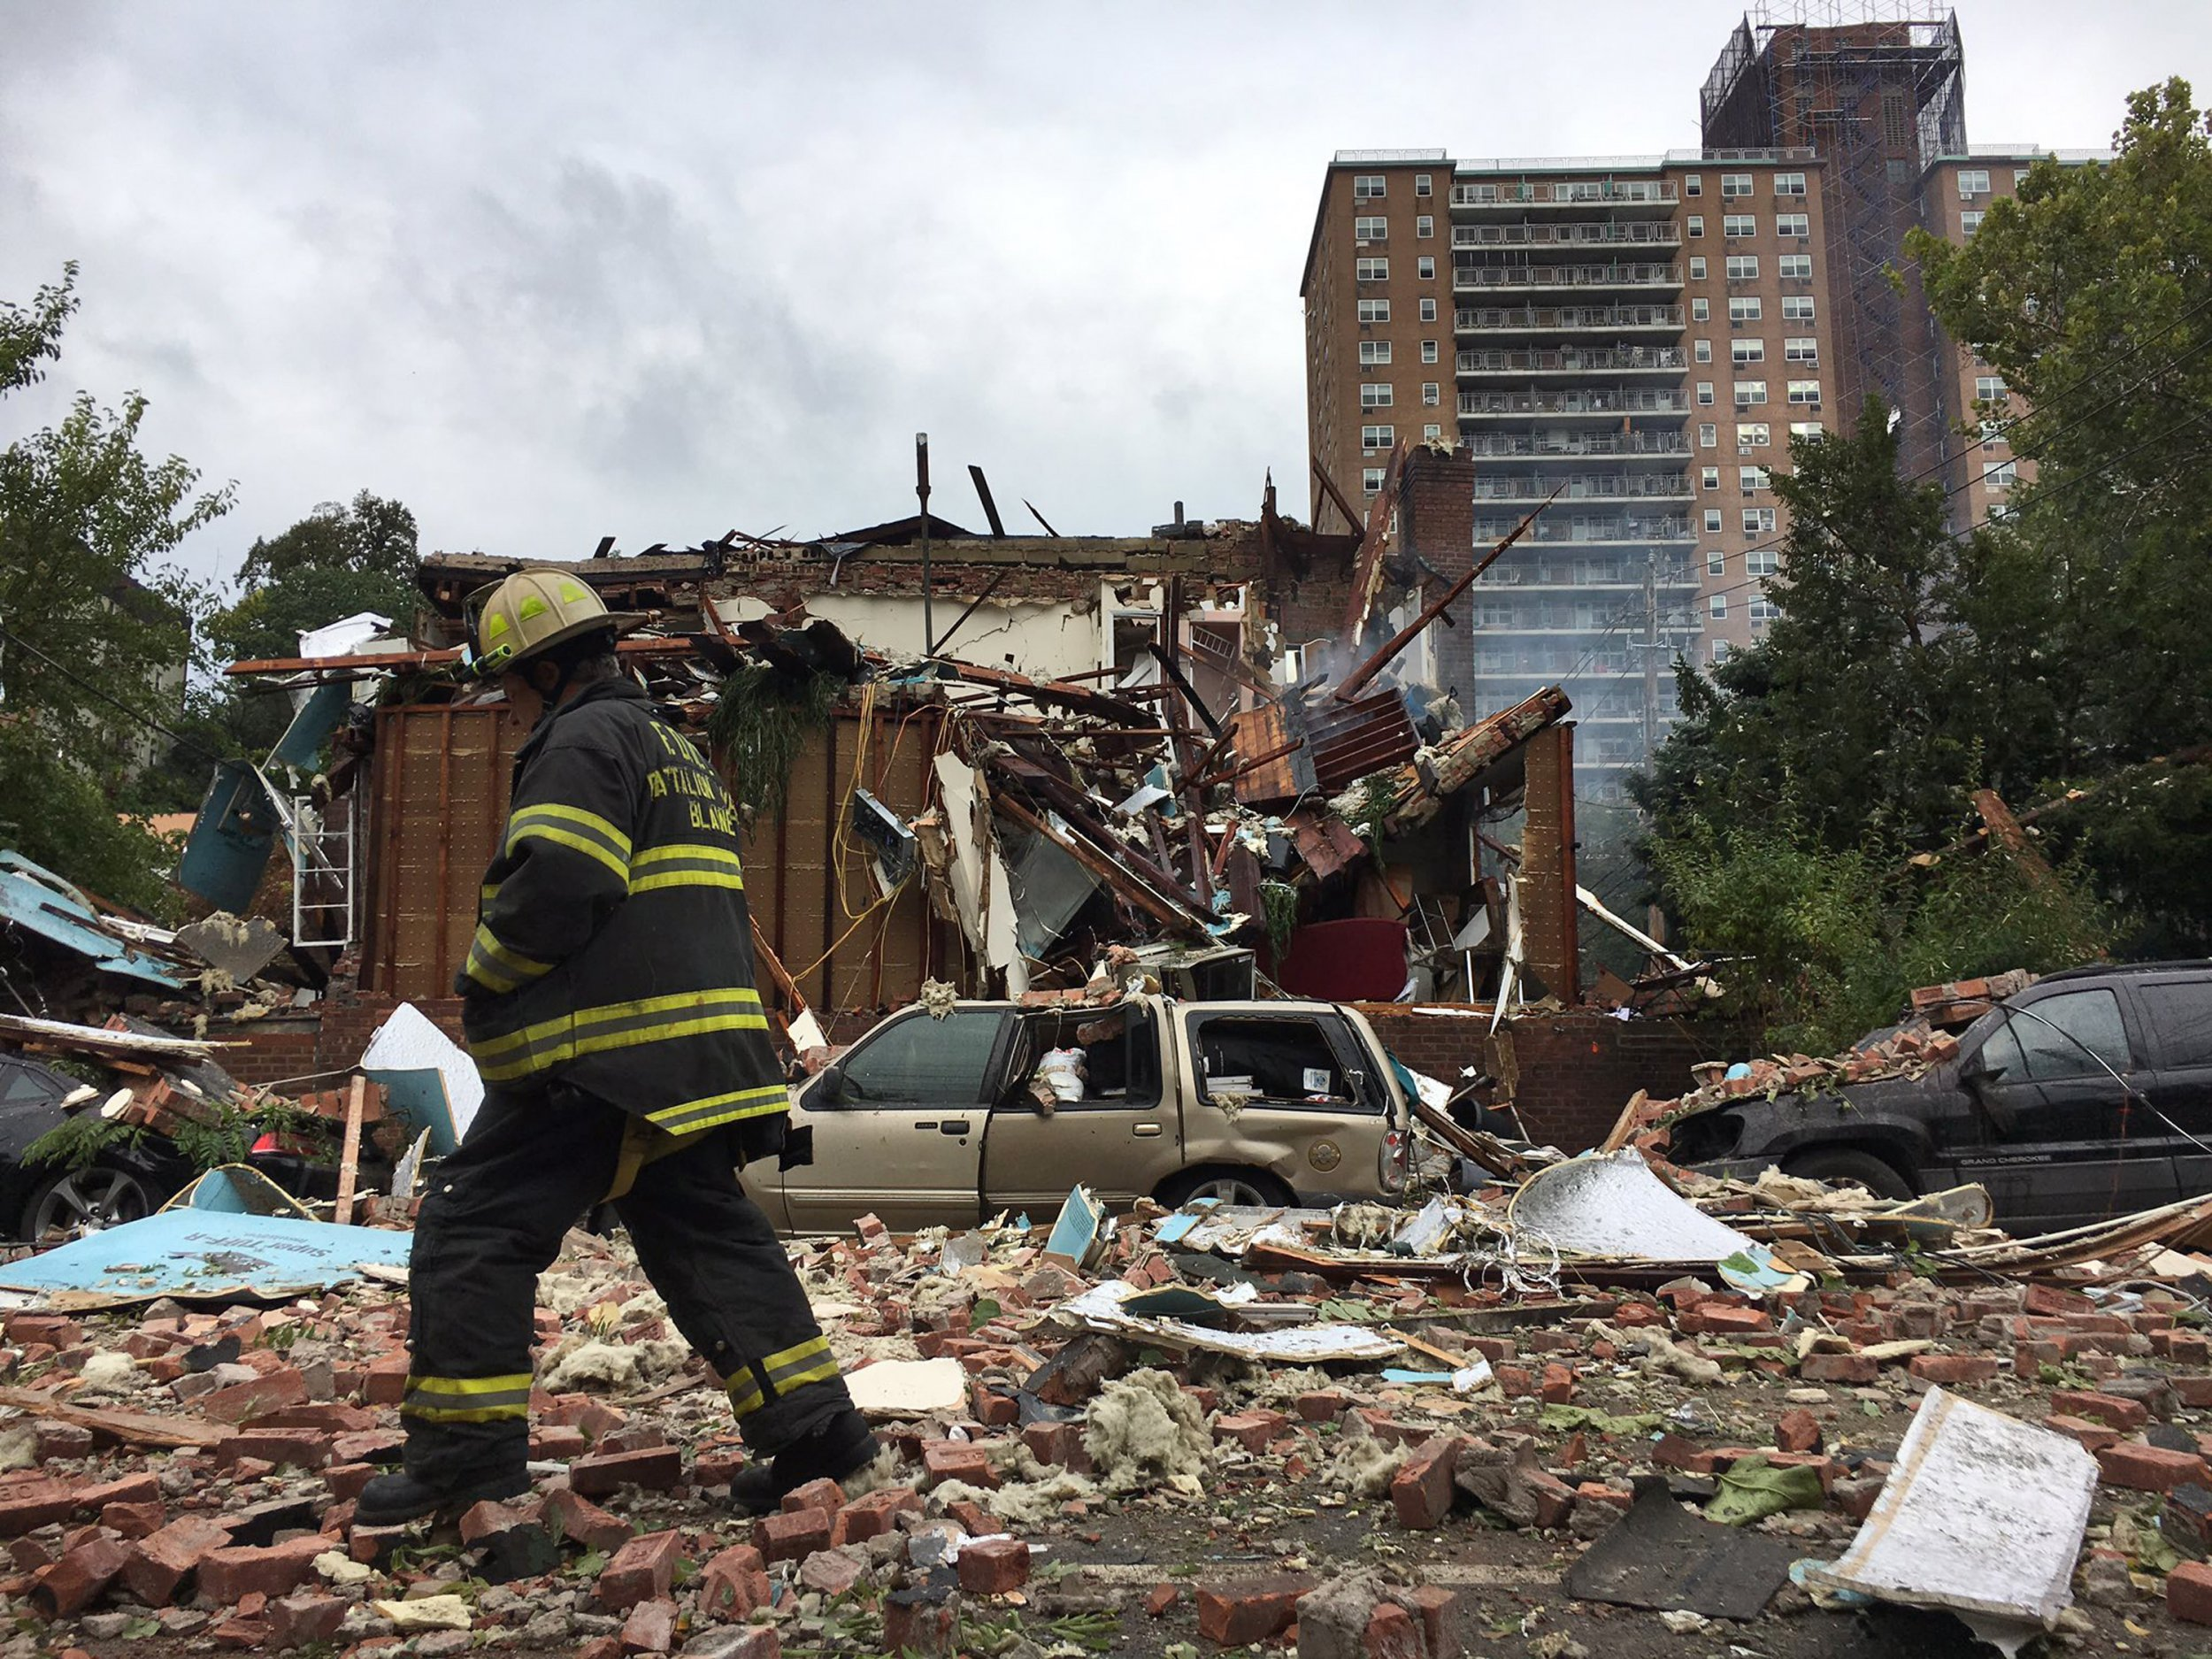 0927_new_york_fire_explosion_01